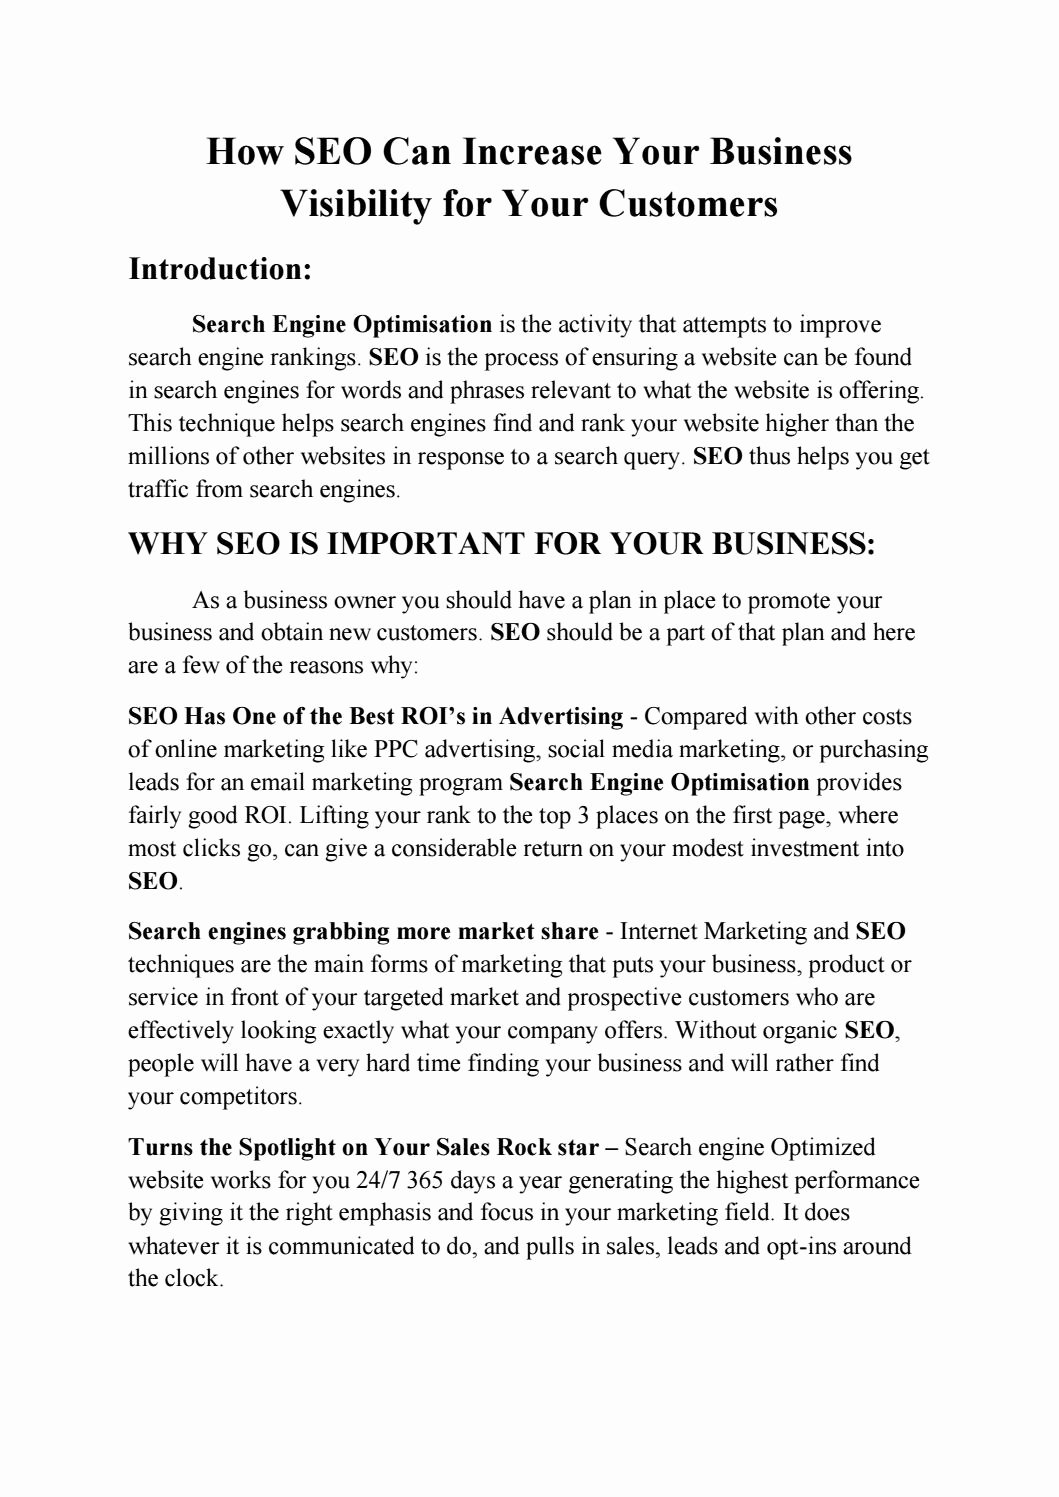 Sample Marketing Letters to Potential Clients Unique How Seo Can Increase Your Business Visibility for Your